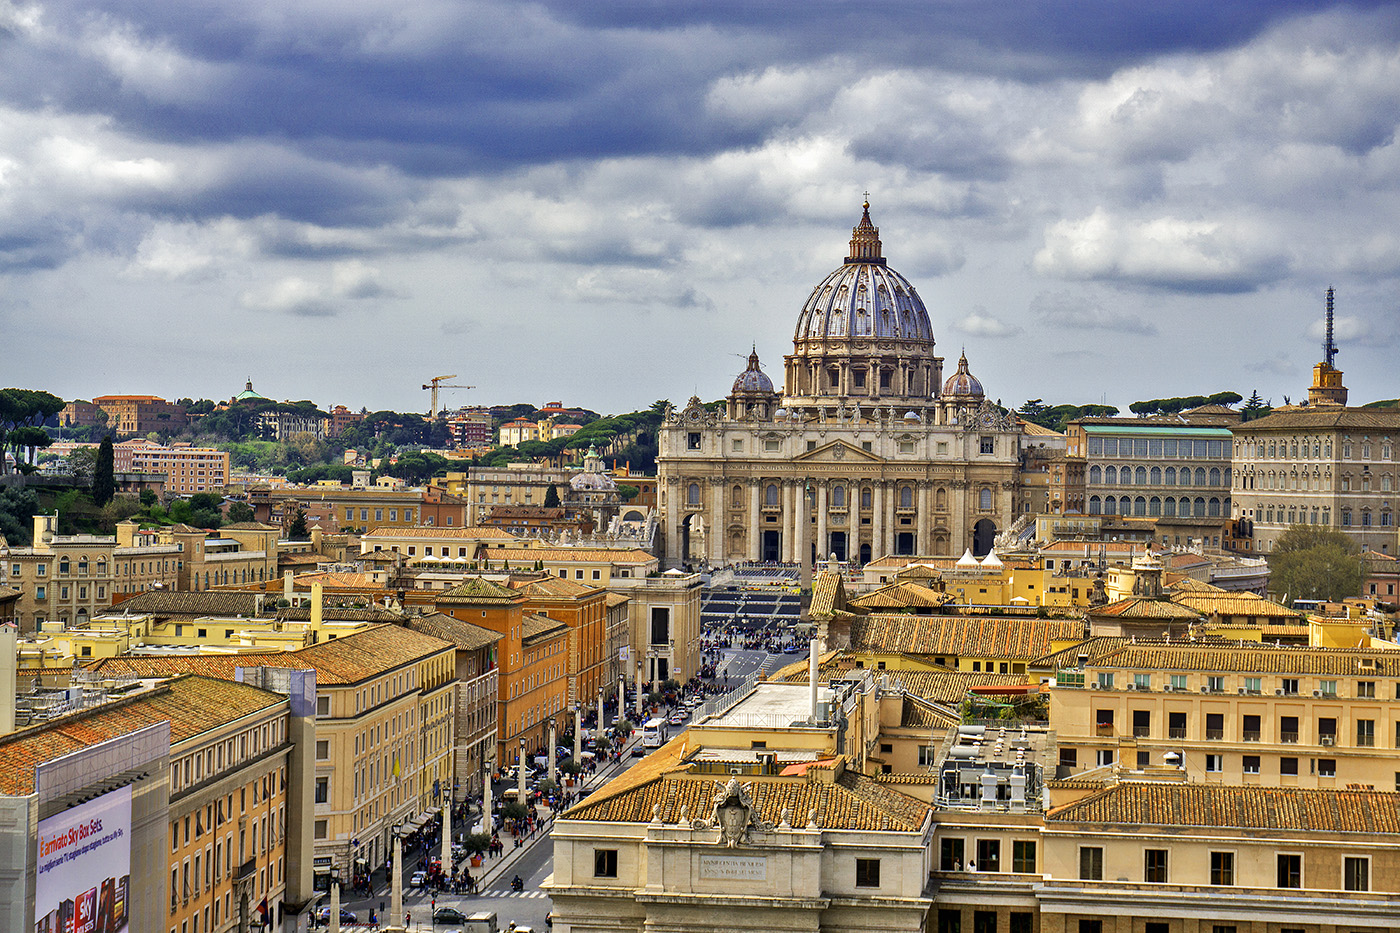 View of St. Peter's Basilica from Castel Sant'Angelo in Rome, Italy